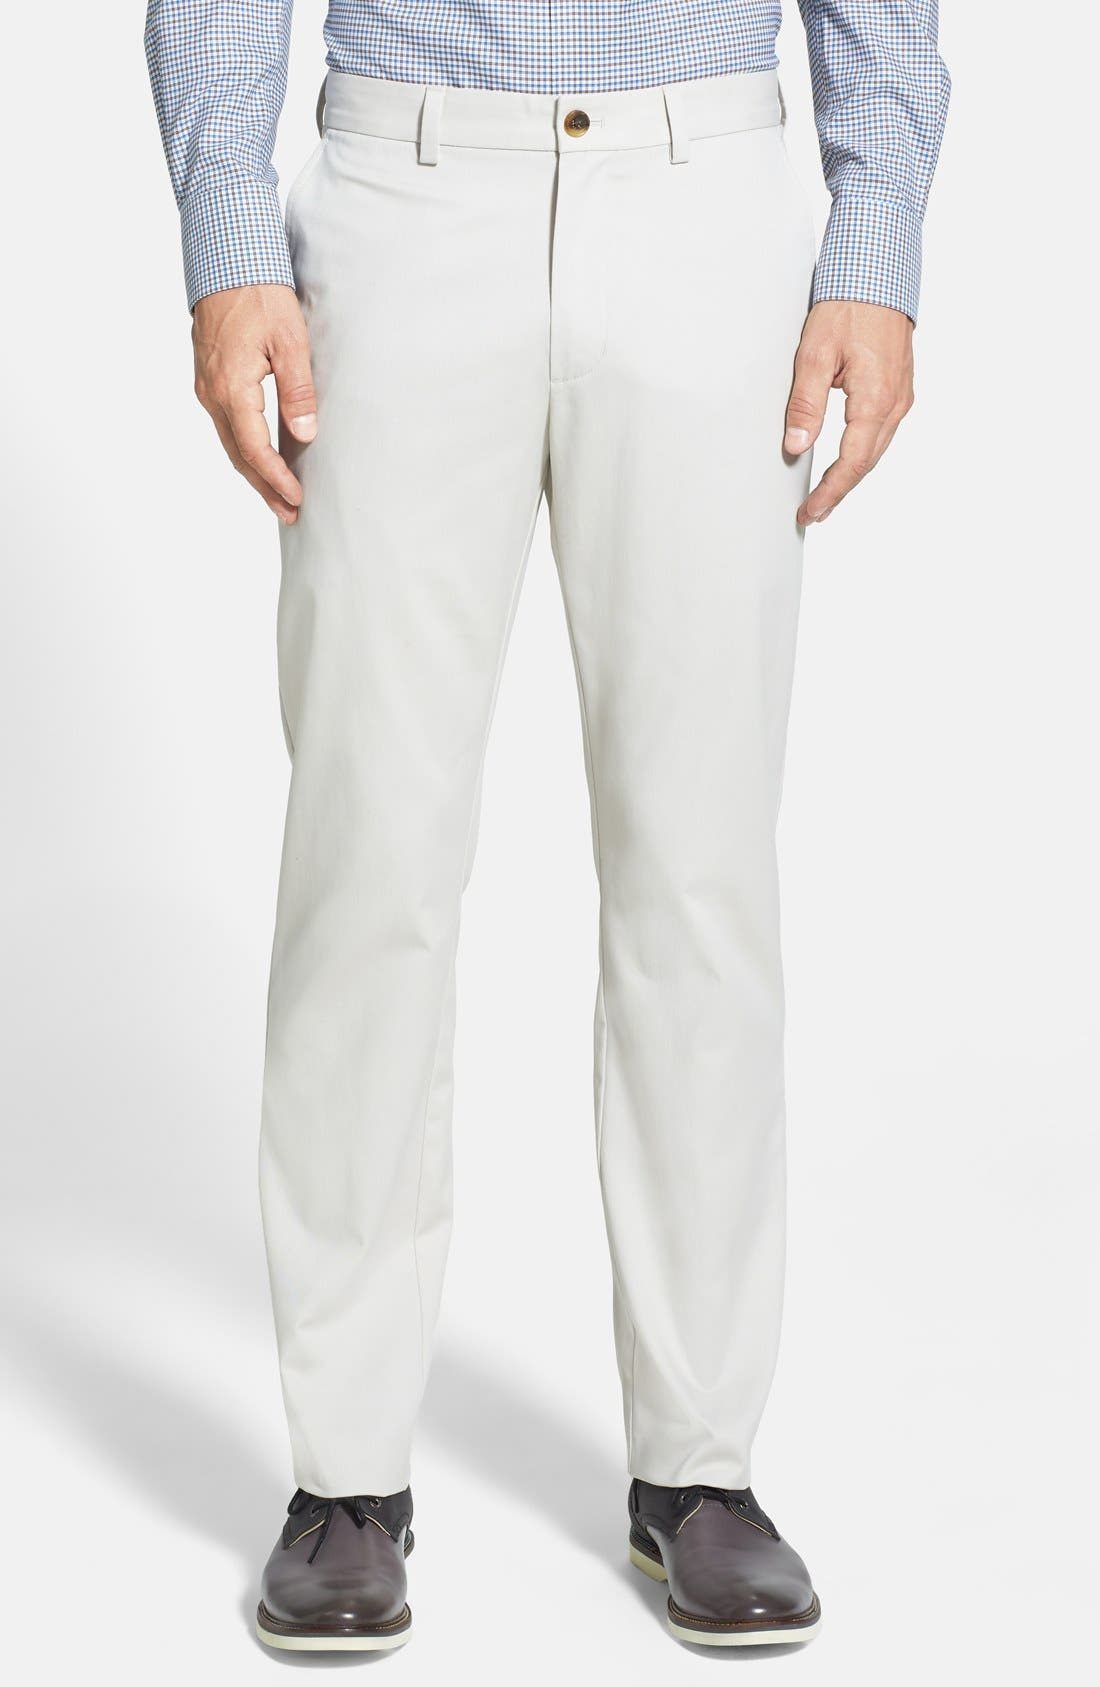 Nordstrom Men's Shop Wrinkle Free Straight Leg Chinos